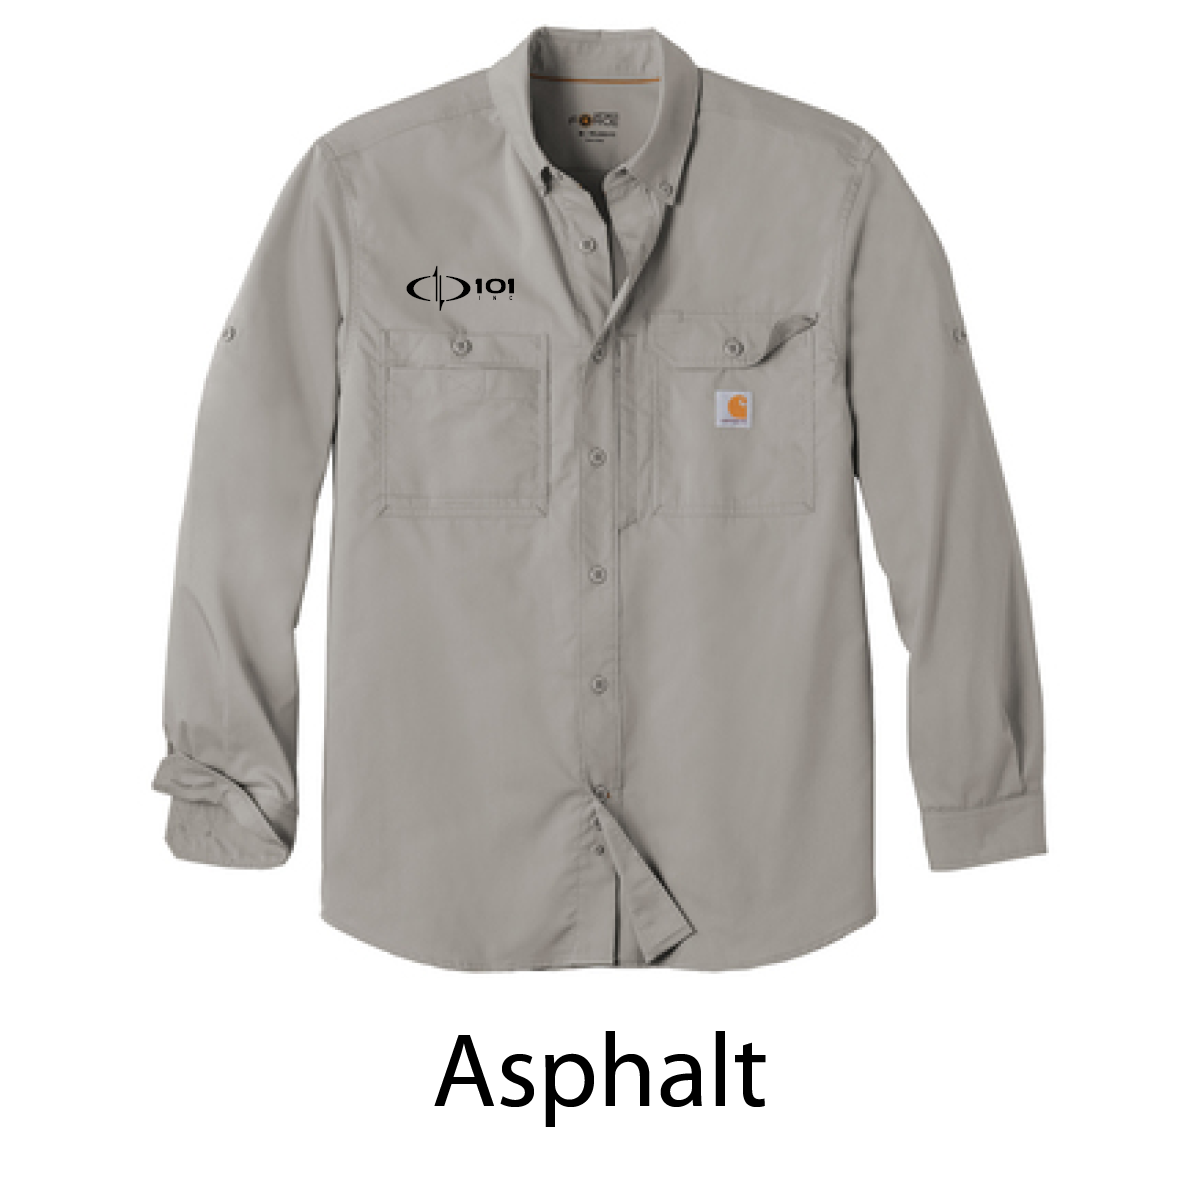 Carhartt Force ® Ridgefield Solid Long Sleeve Shirt - Embroidered